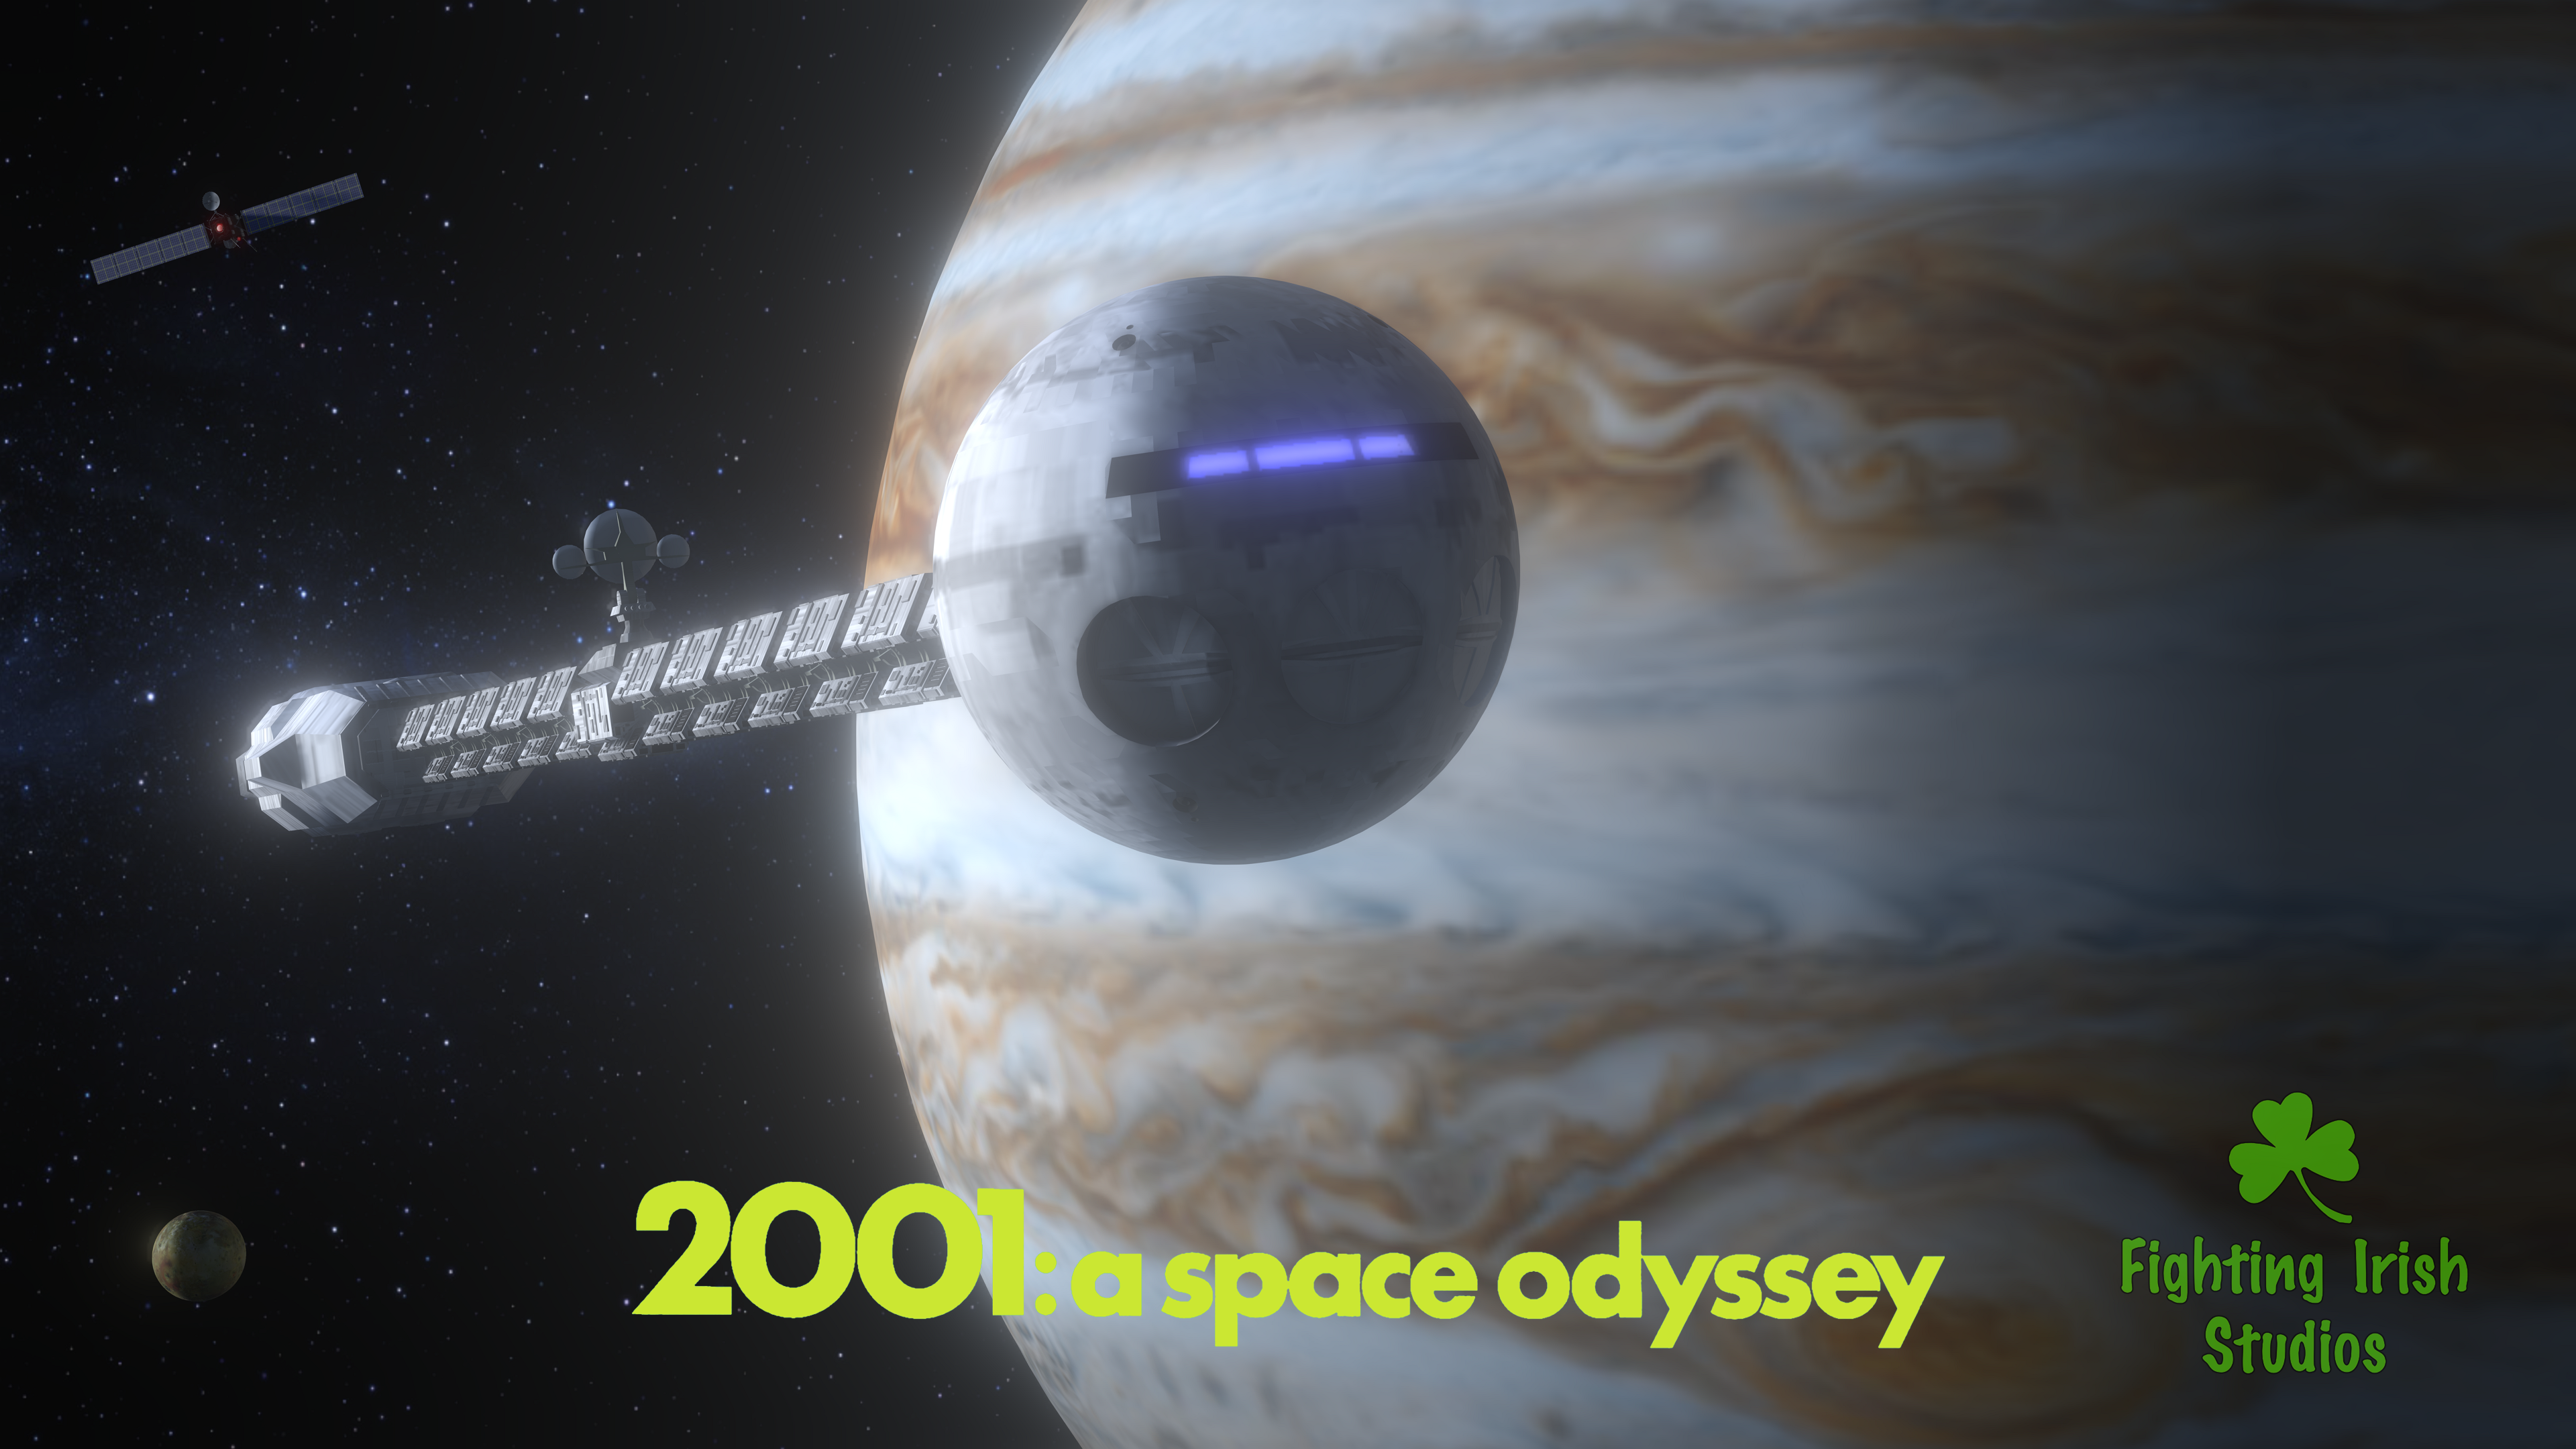 2001:a space odyssey -- 2D & 3D animation Services Fighting Irish Studios